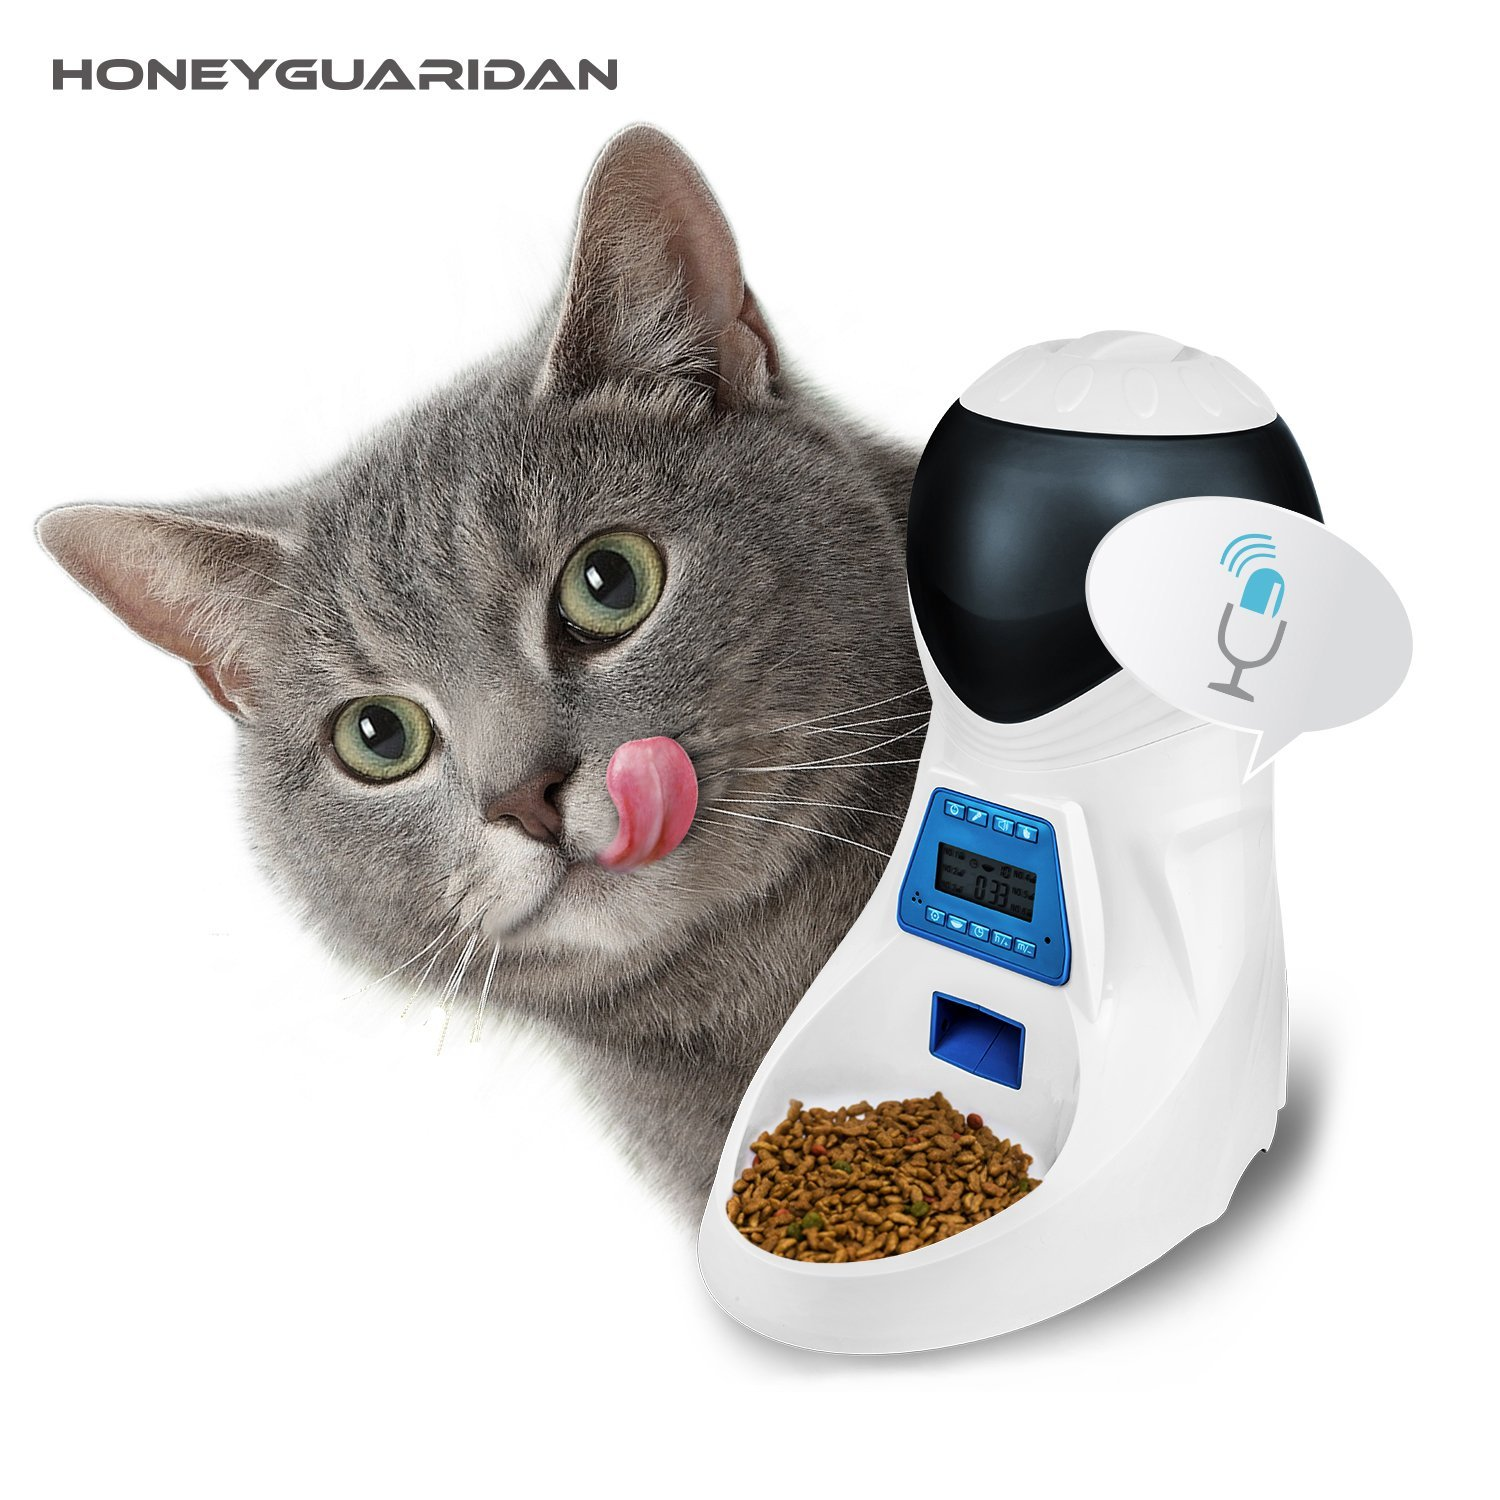 HoneyGuaridan A25 Automatic Pet Feeder with Voice Reminding and Timer Programmable, Electronic Food Dispenser 6-Meal for Dogs (Large, Medium and Small) and Cats